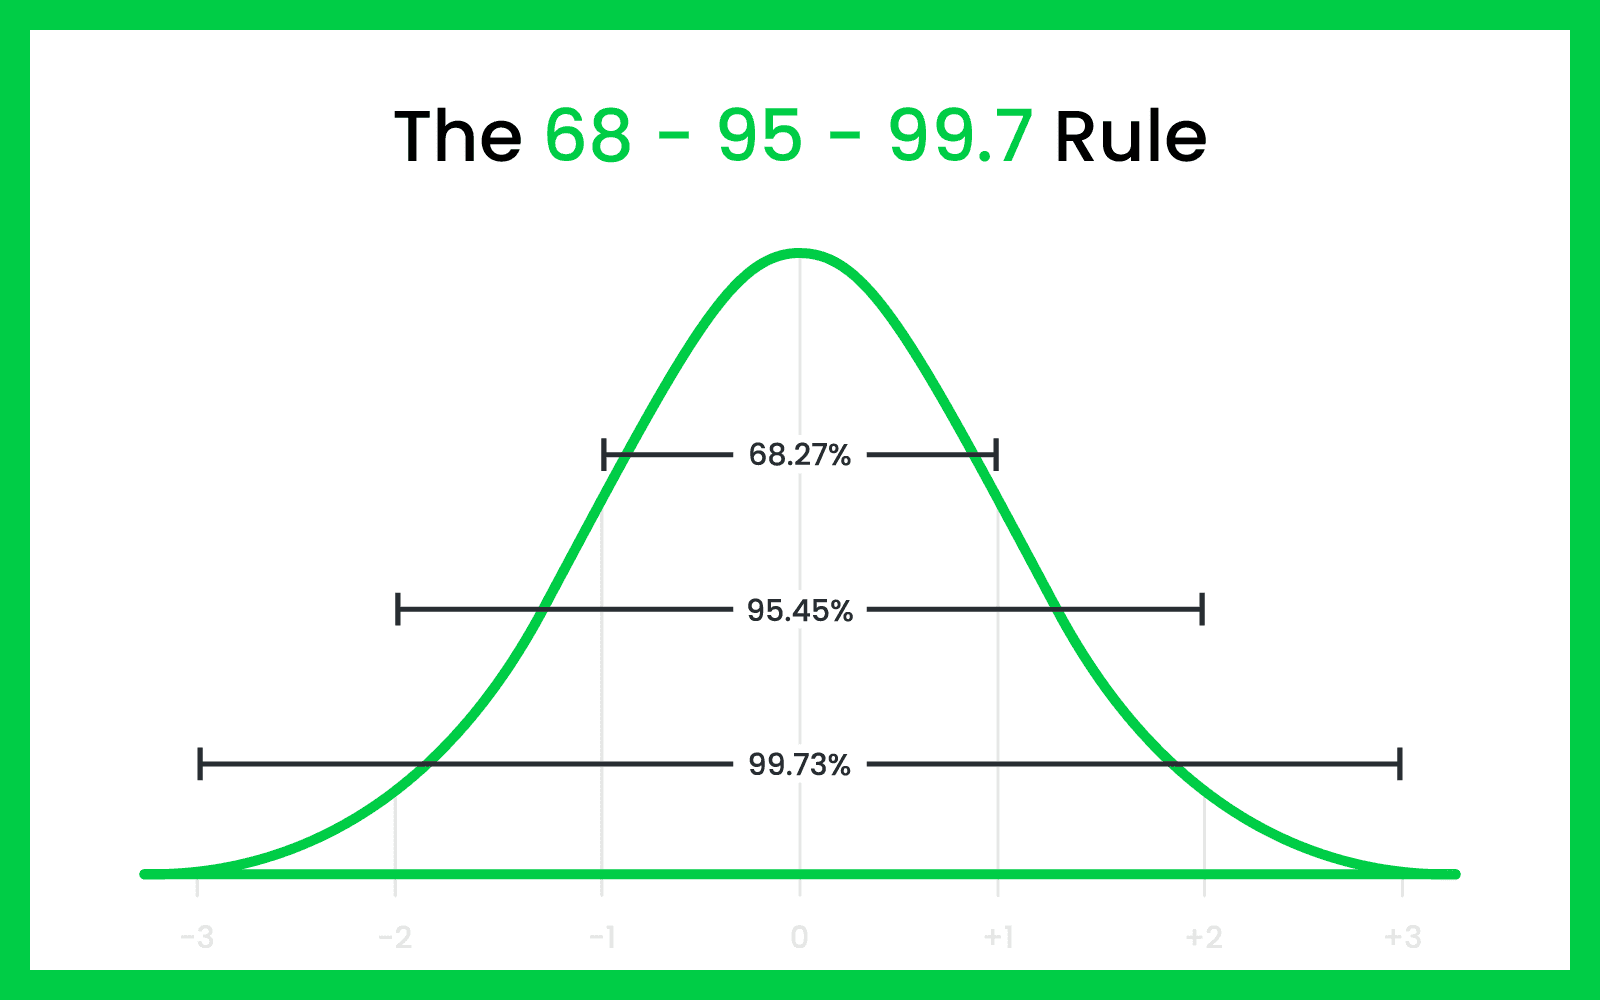 A distribution bell curve graph